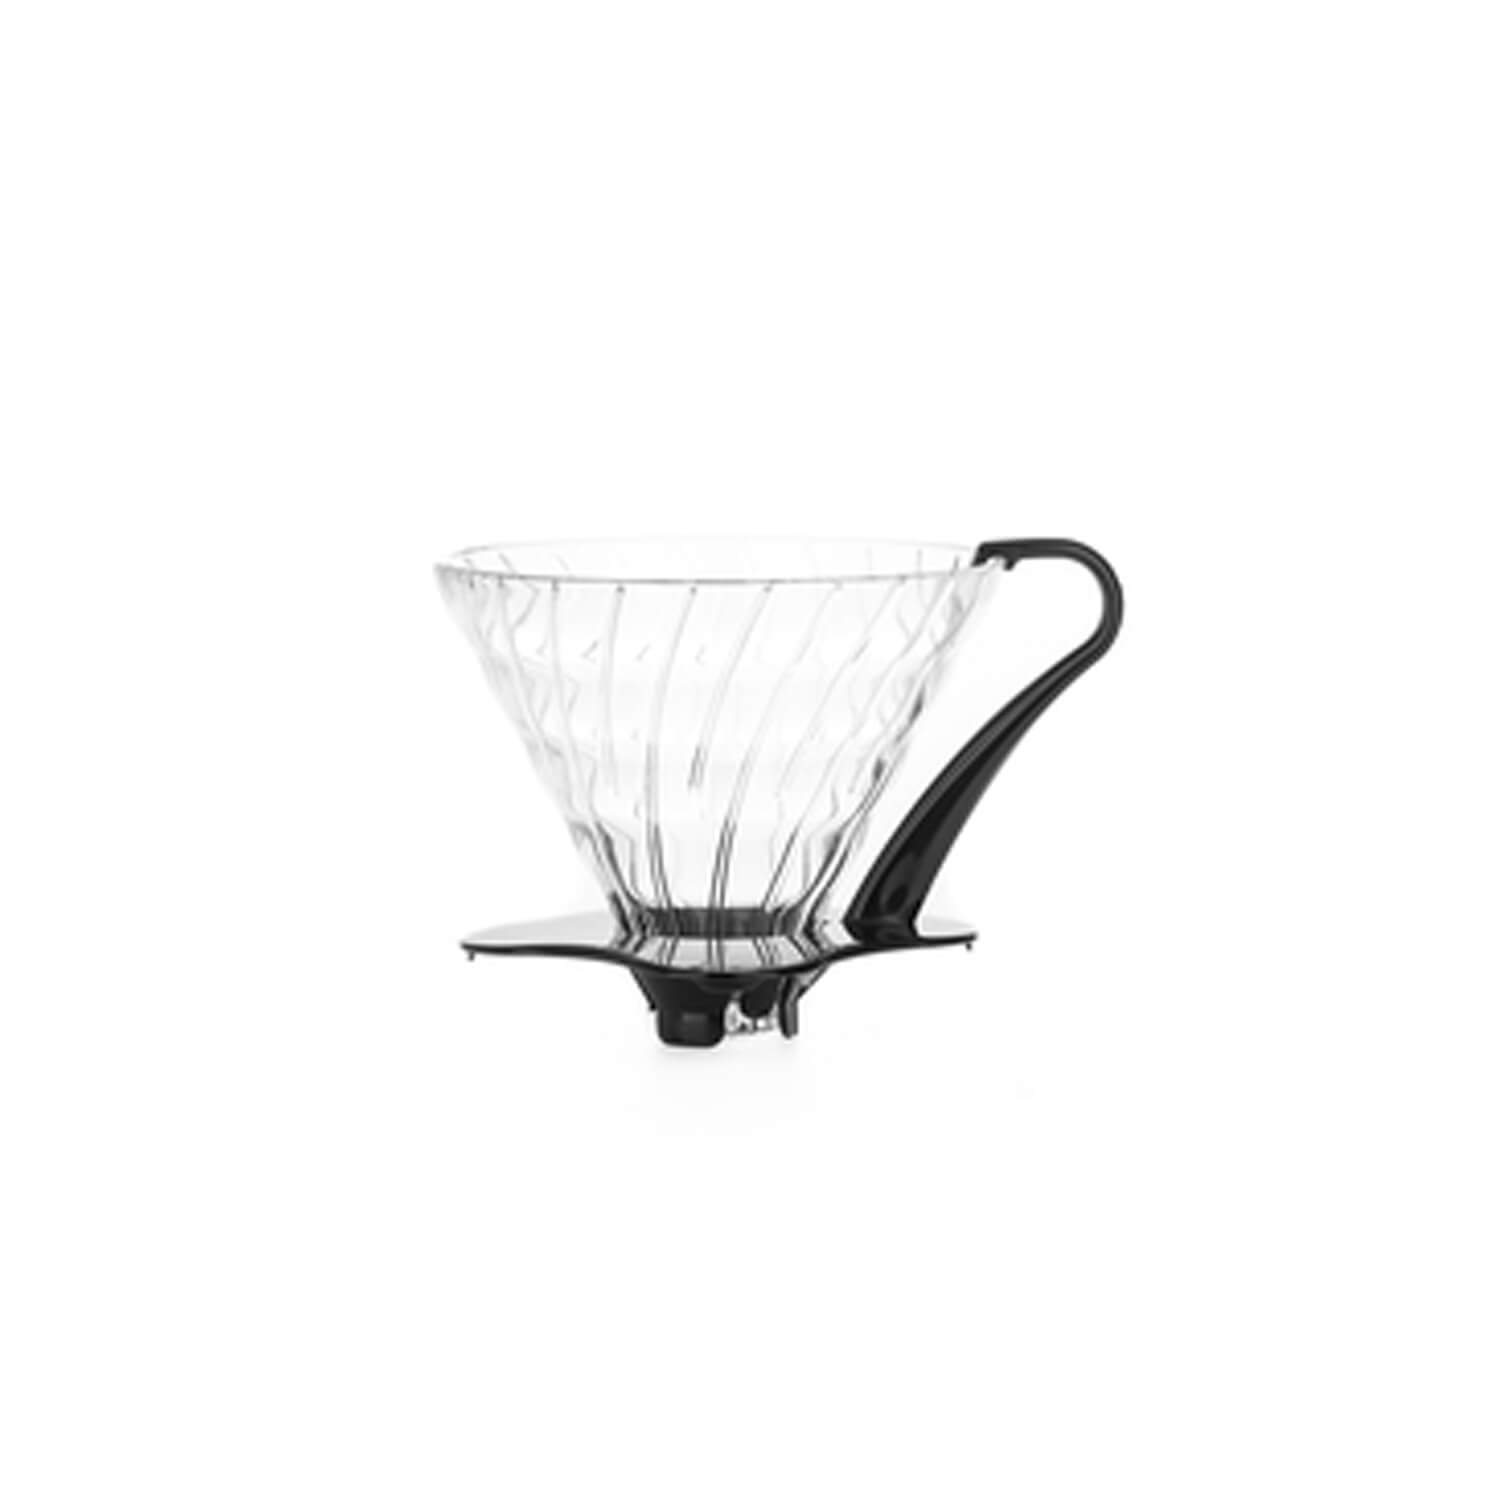 Hario - Dripper V60 - 03 -  Glass Black